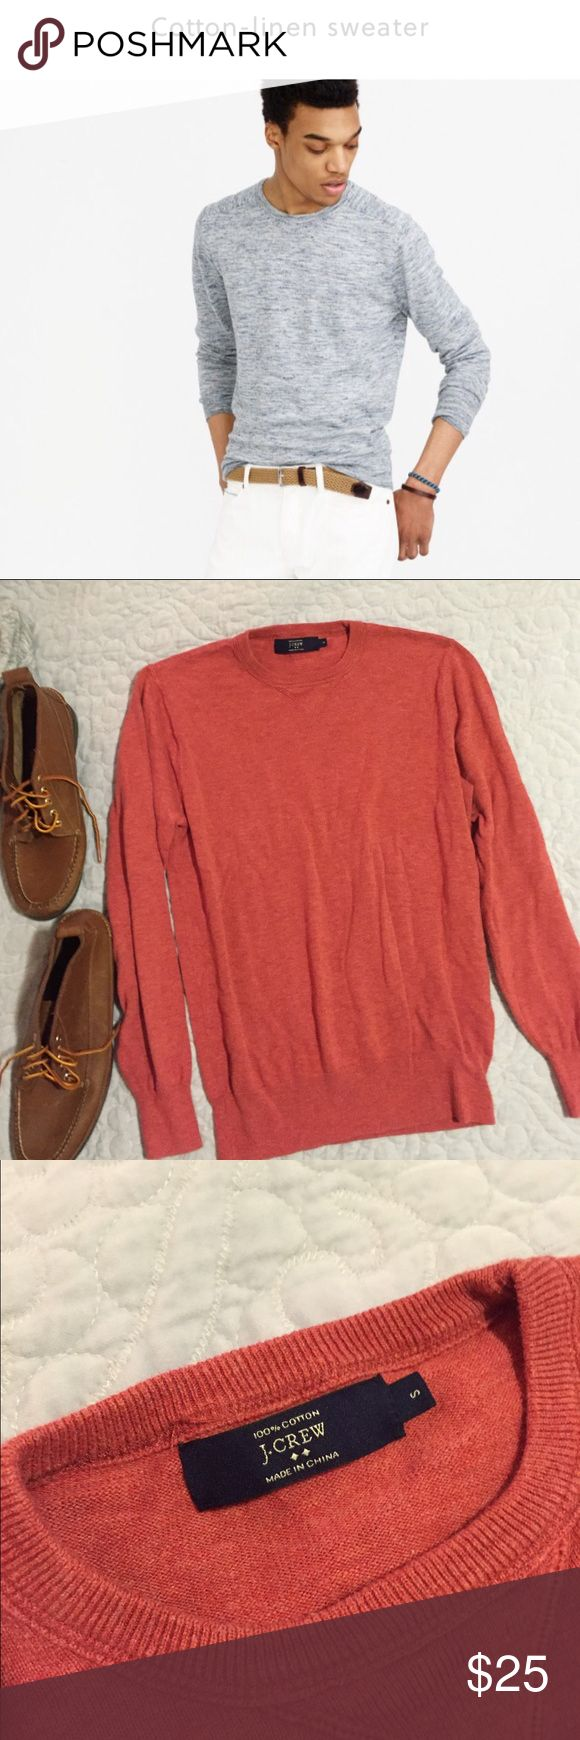 J Crew men's crew neck sweater (red) 100% cotton / men's crew neck sweater in RED🔴 (‼️not the color seen on model in first picture - Please view the second picture to see color of this item‼️) J. Crew Sweaters Crewneck